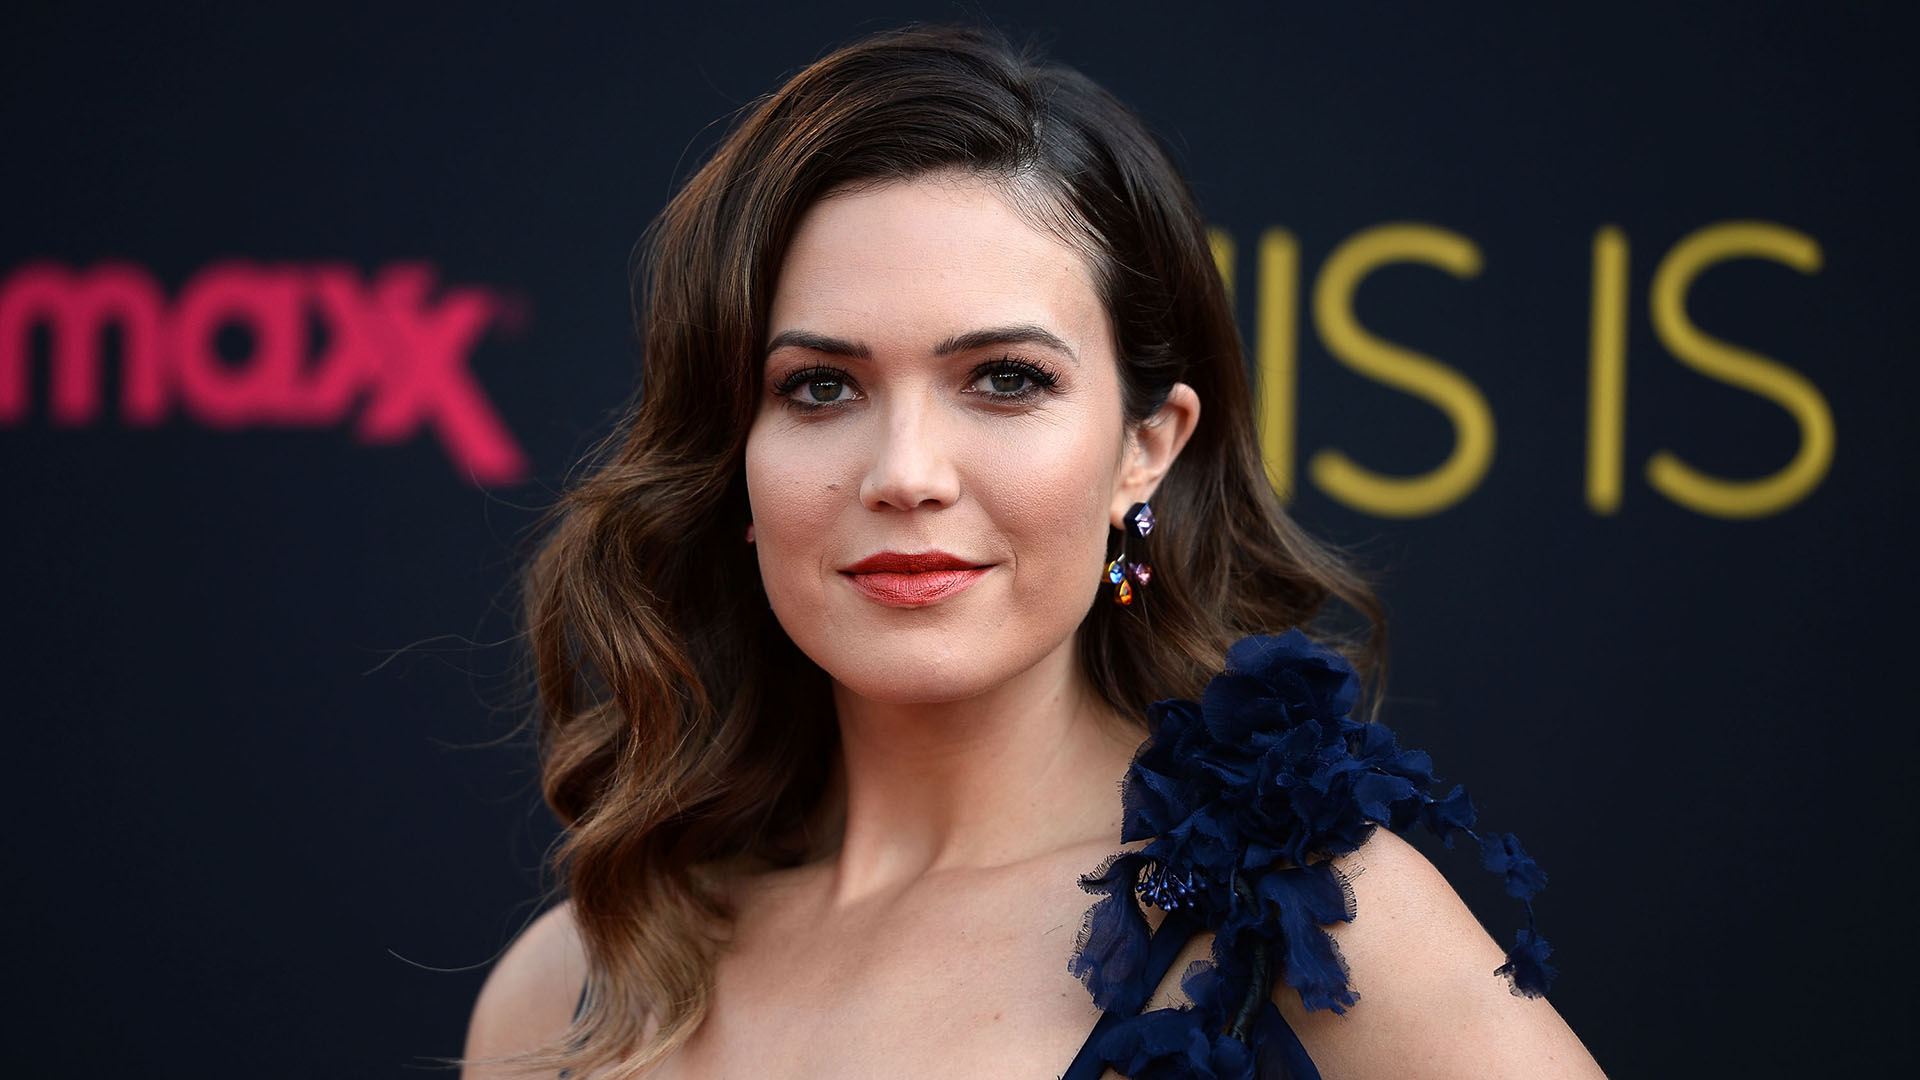 Mandy Moore Rubs Cannabis Oil on Her Feet So They Don't Hurt When She Wears Heels